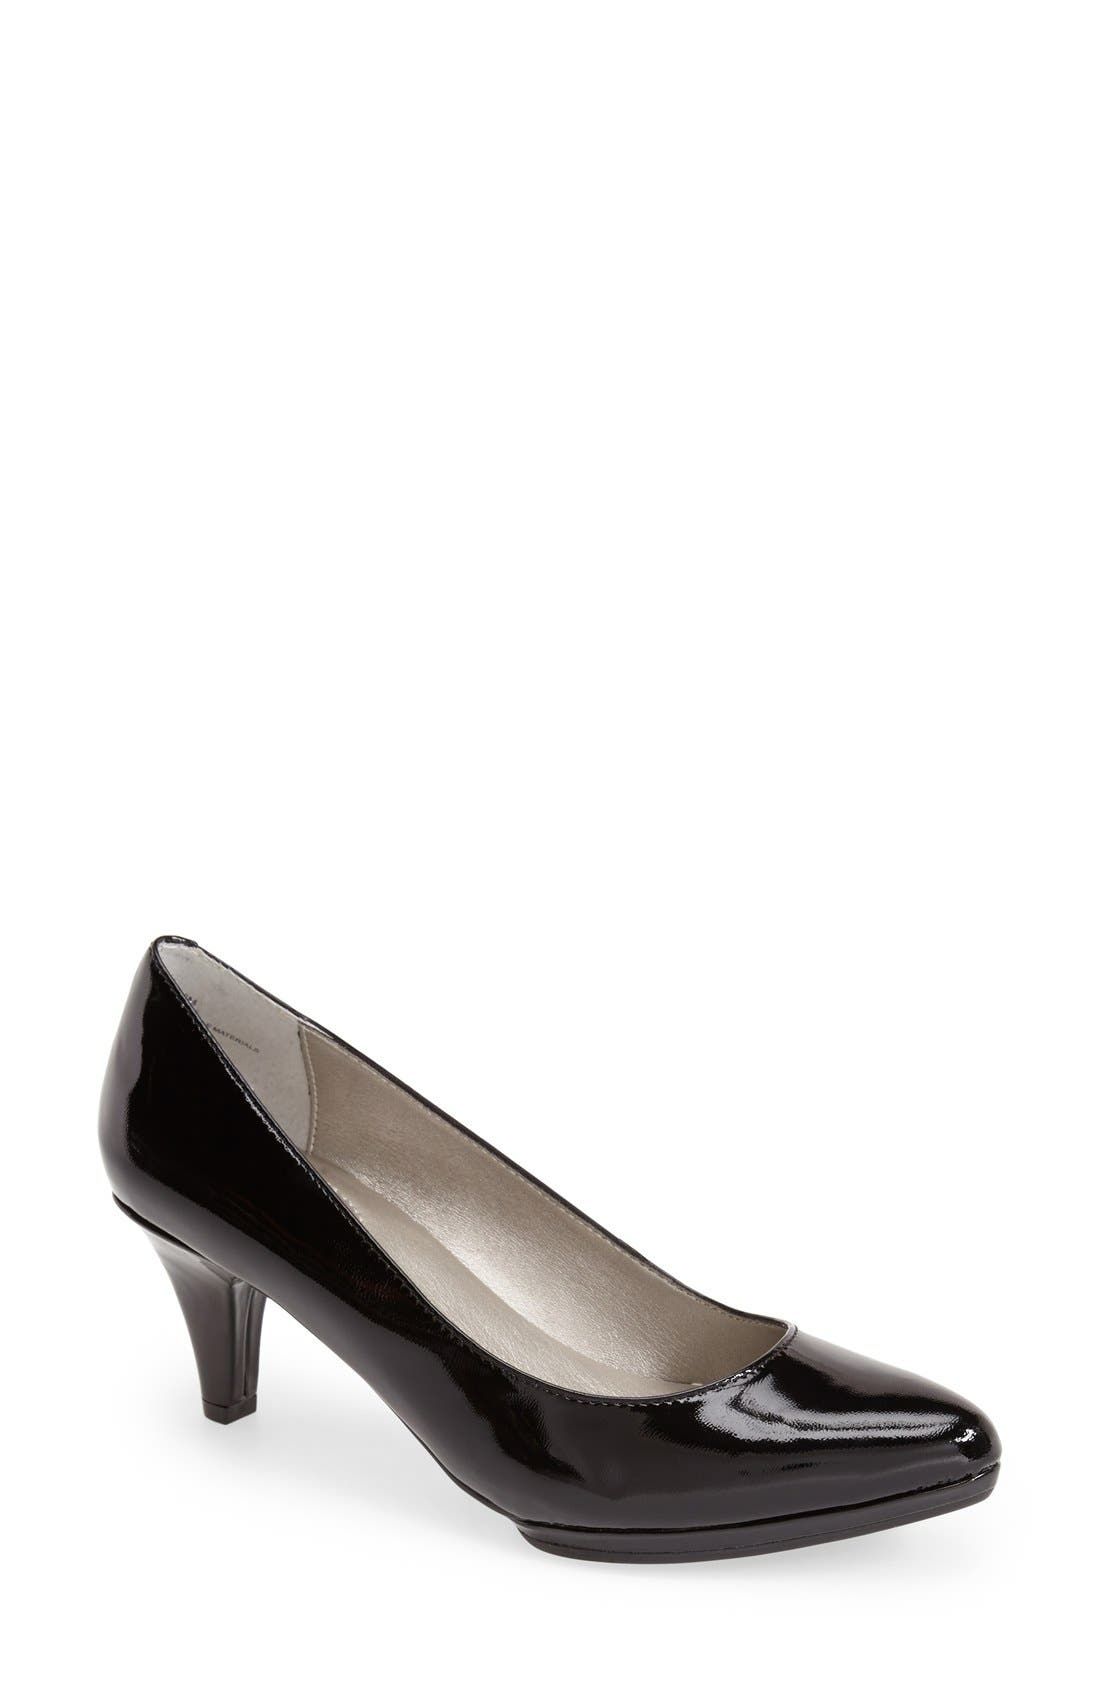 Alternate Image 1 Selected - Me Too 'Andrea' Patent Leather Pump (Women)